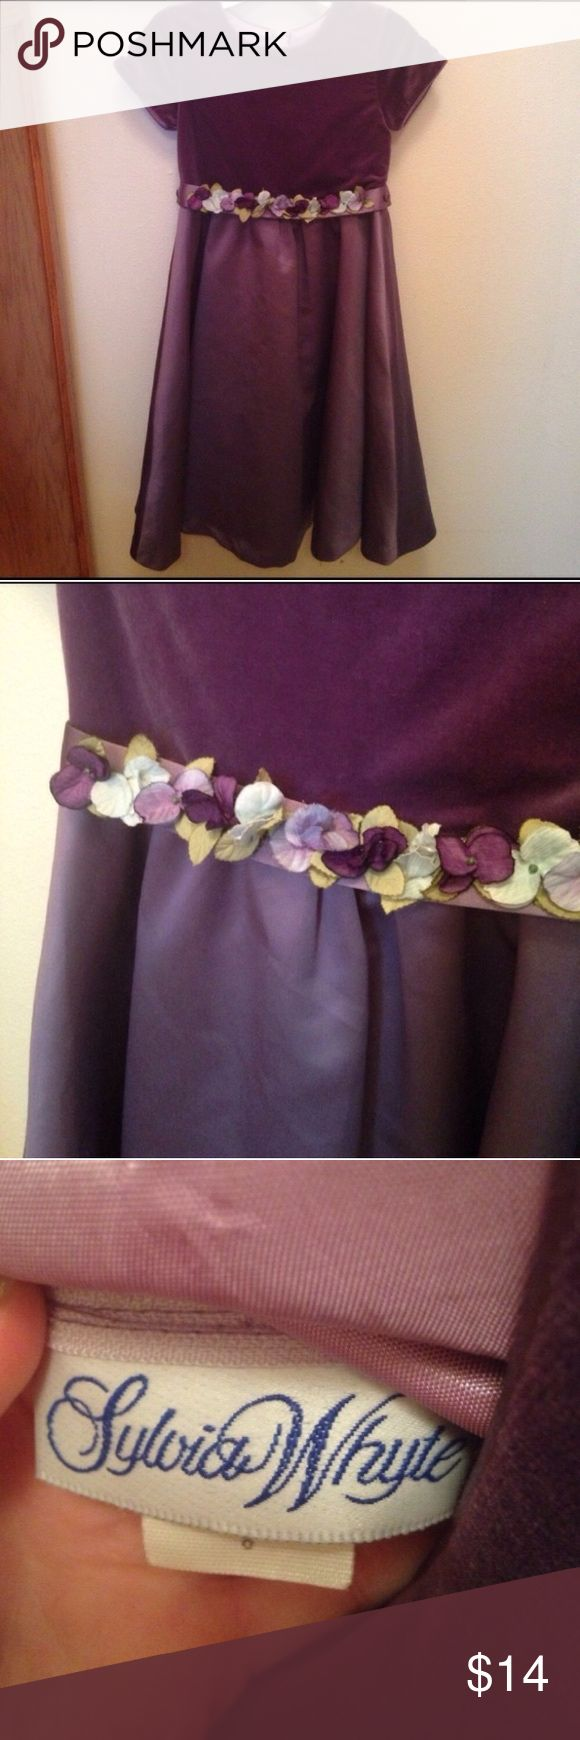 🎉Sylvia Whyte Dark Purple Flower Dress 8 Formal Spring/Summer Special Occasion, Wedding Flower Girl Sylvia Whyte dark purple dress. Has flower belt this is removable. Size 8. In very good condition. Please ask any questions  💲Open To Offers💲 🚫No Trades🚫 📦Ask About Bundle Discounts💰 Sylvia Whyte Dresses Formal